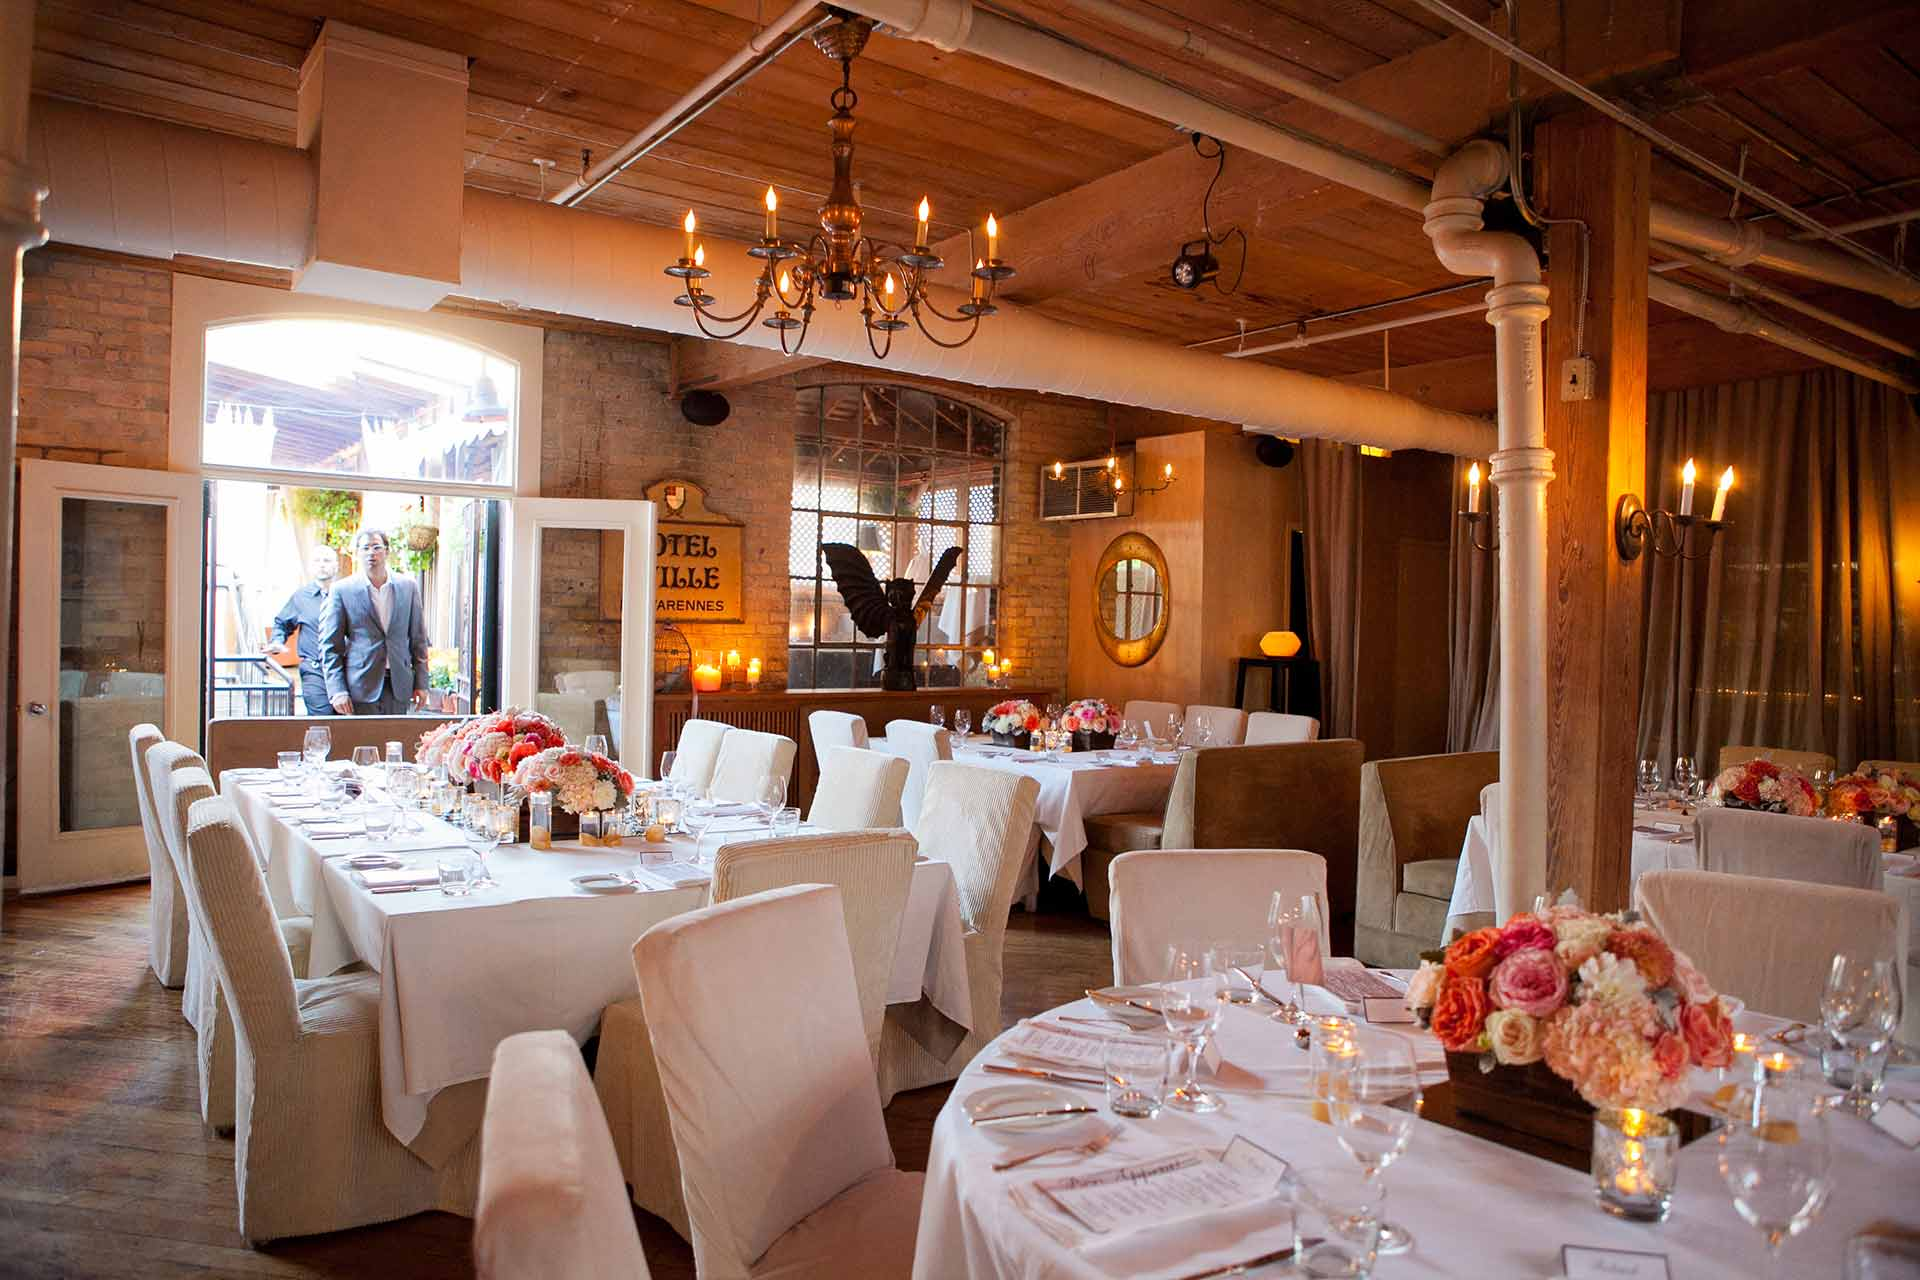 Toronto Wedding Venue - Elegant Restaurant Reception - Private Dining Room